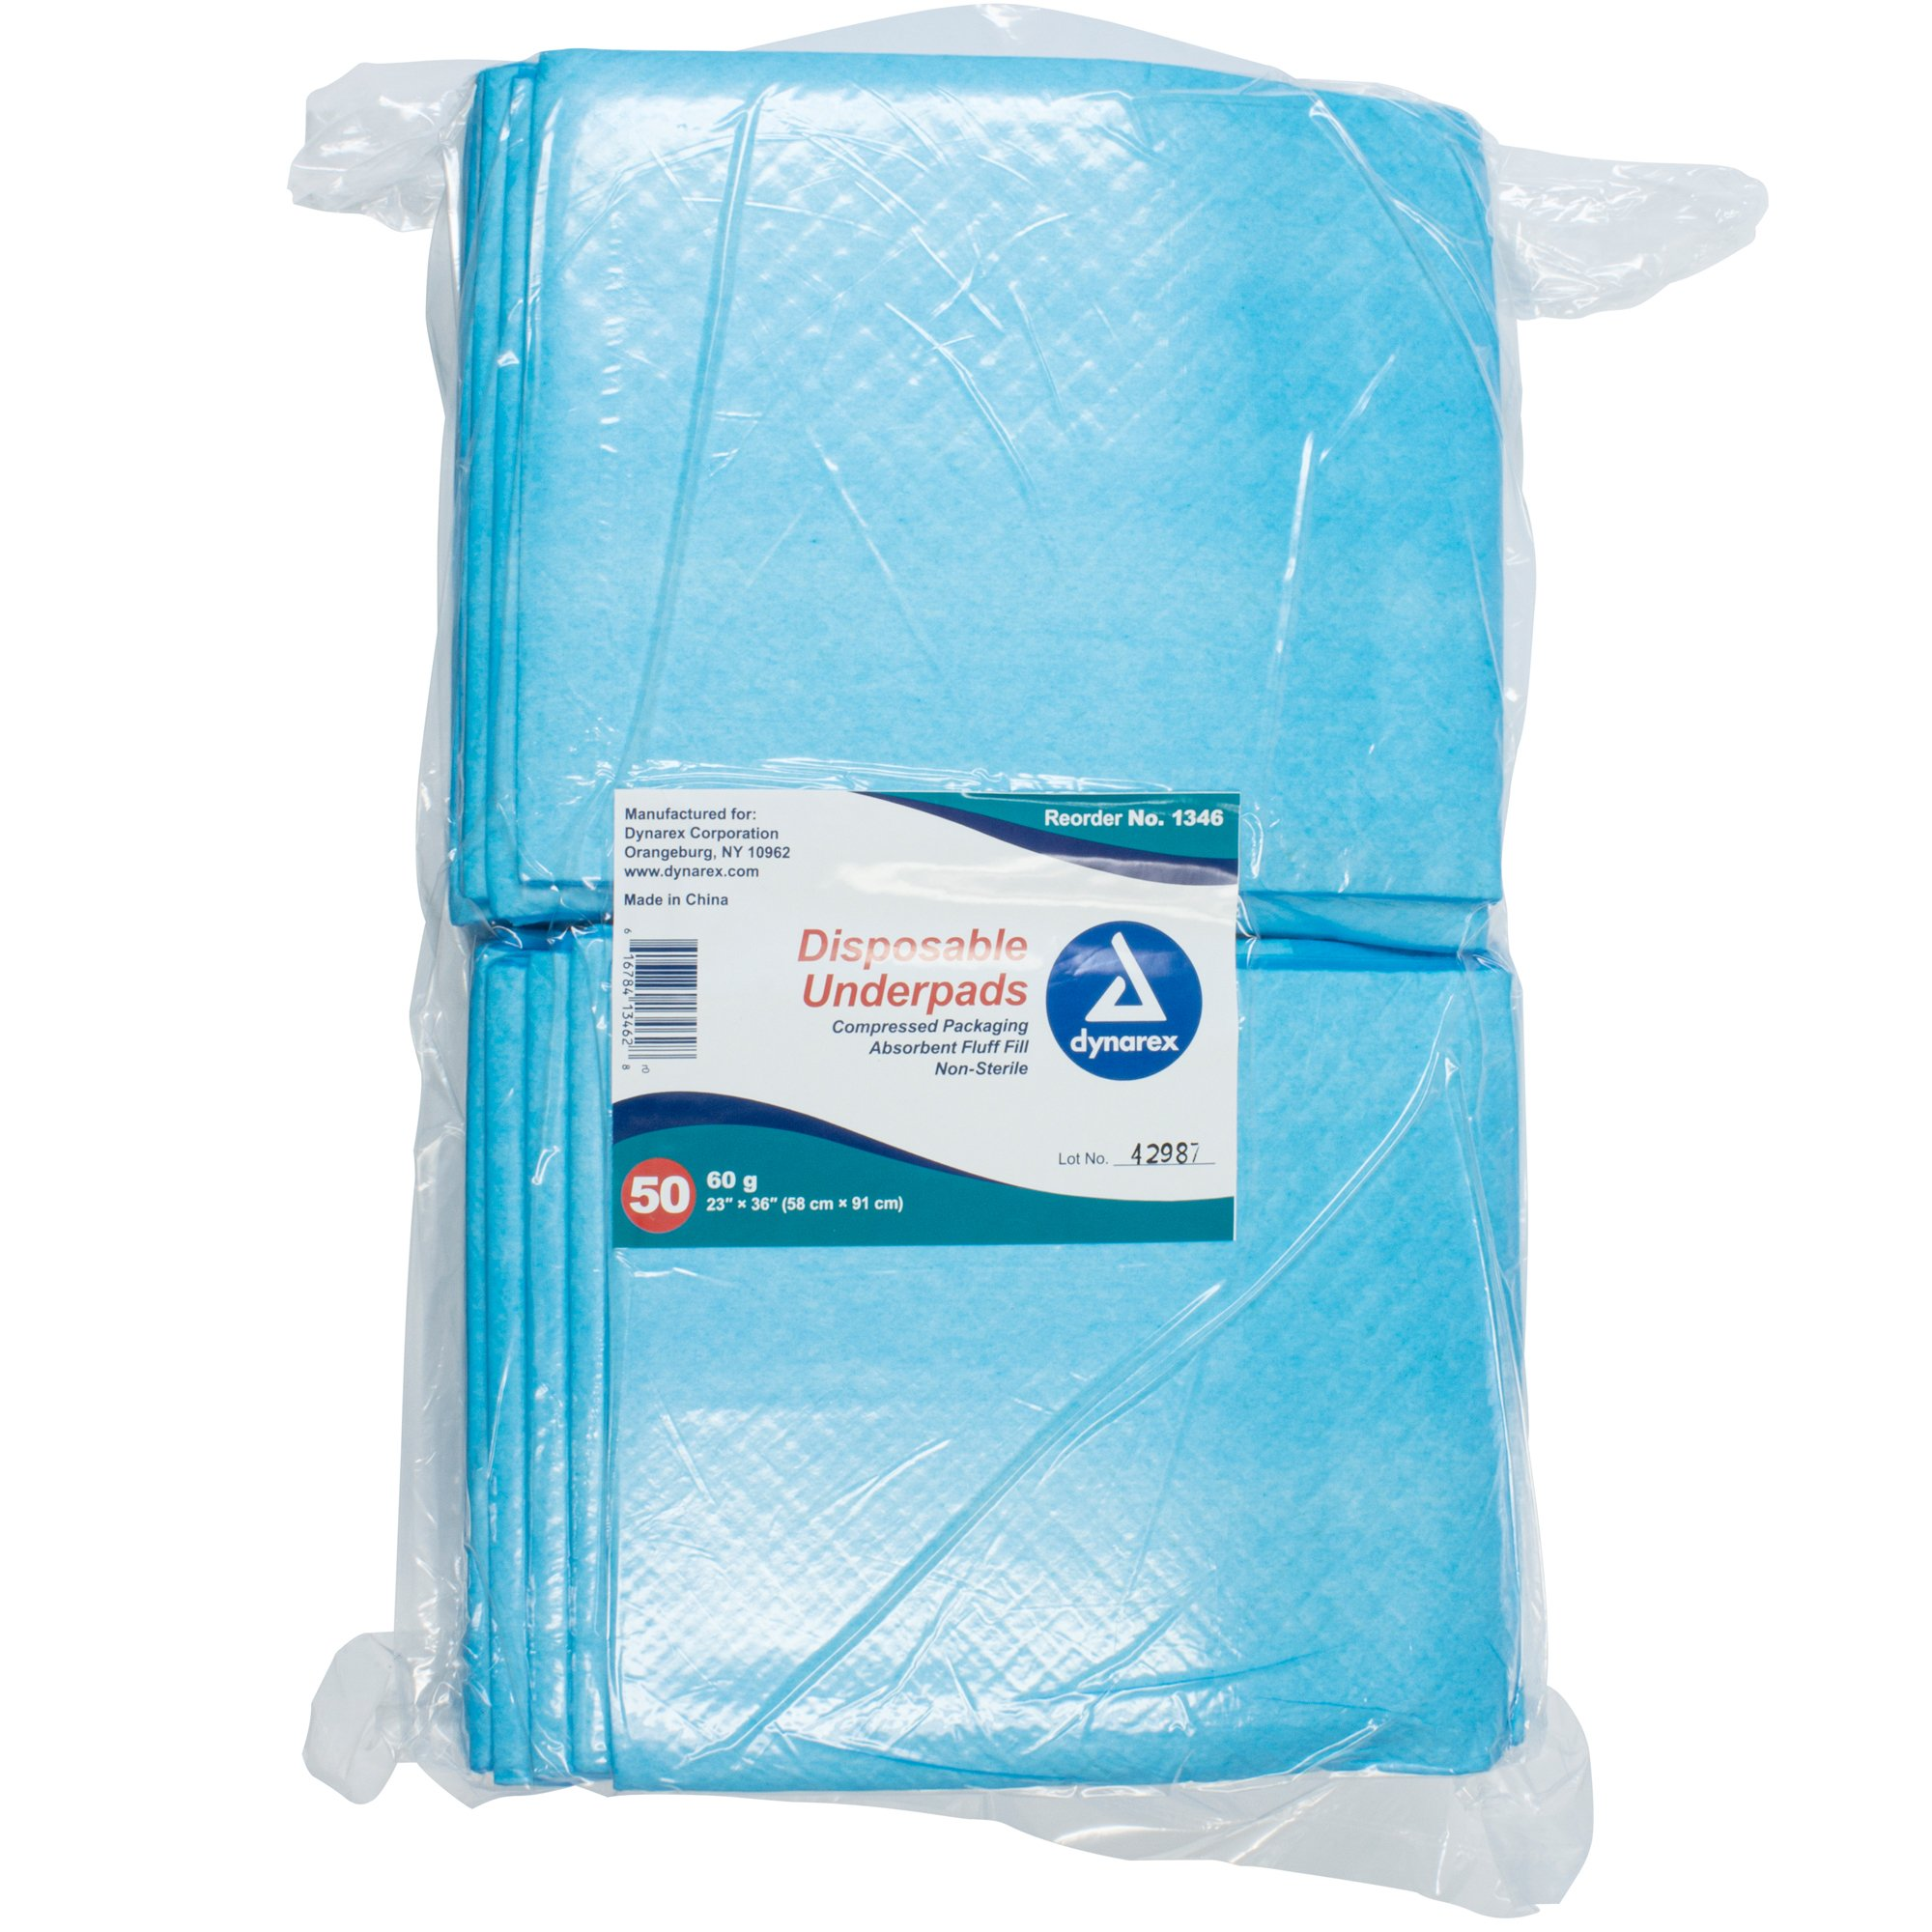 """Dynarex Disposable Underpad, Light Absorbency, 1346, 23 X 36"""" - Case of 150"""